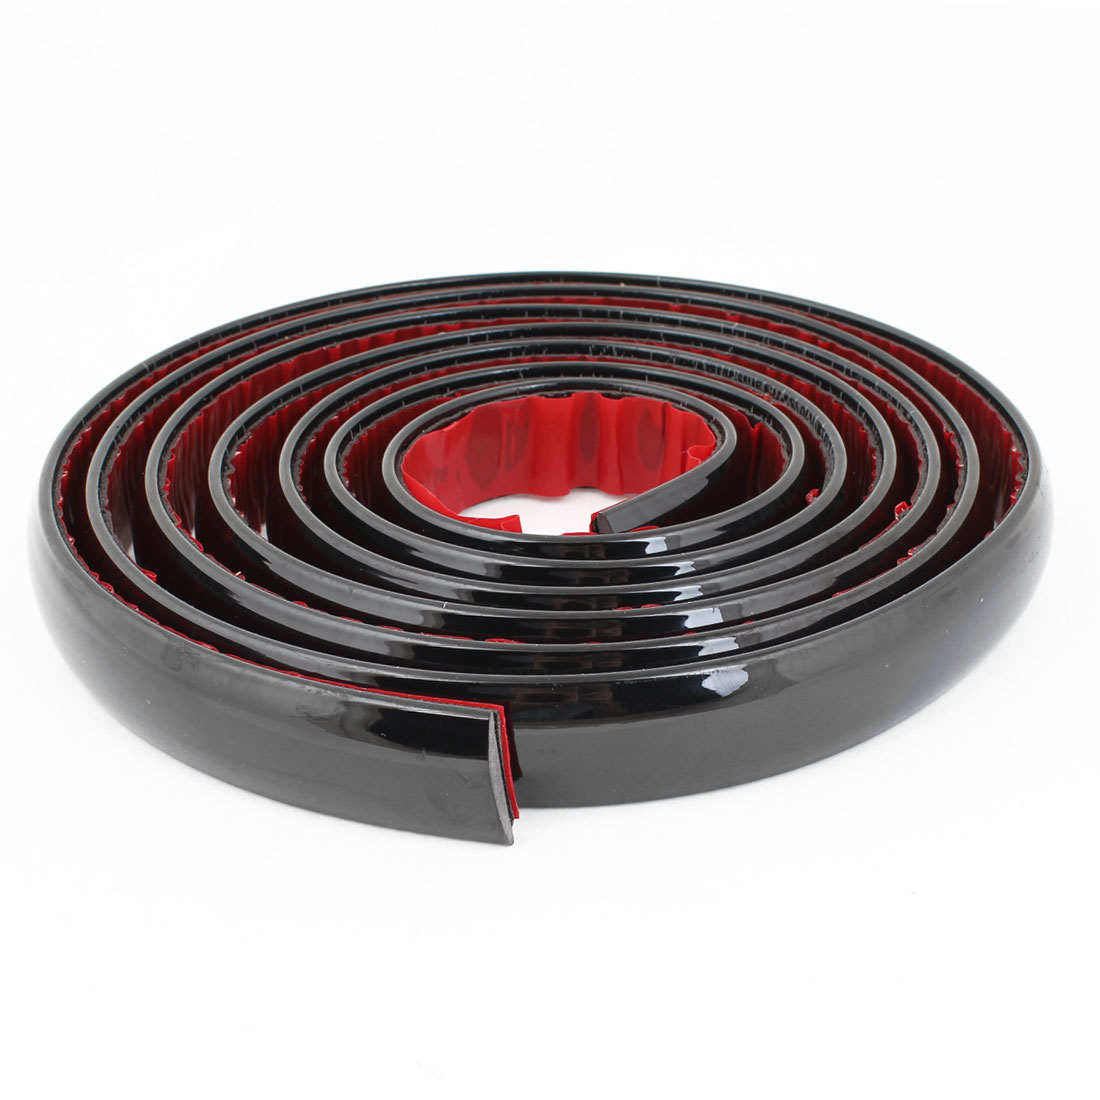 3 Meters 26mm Wide Black Flexible Trim Strip Line for Vehicle Car